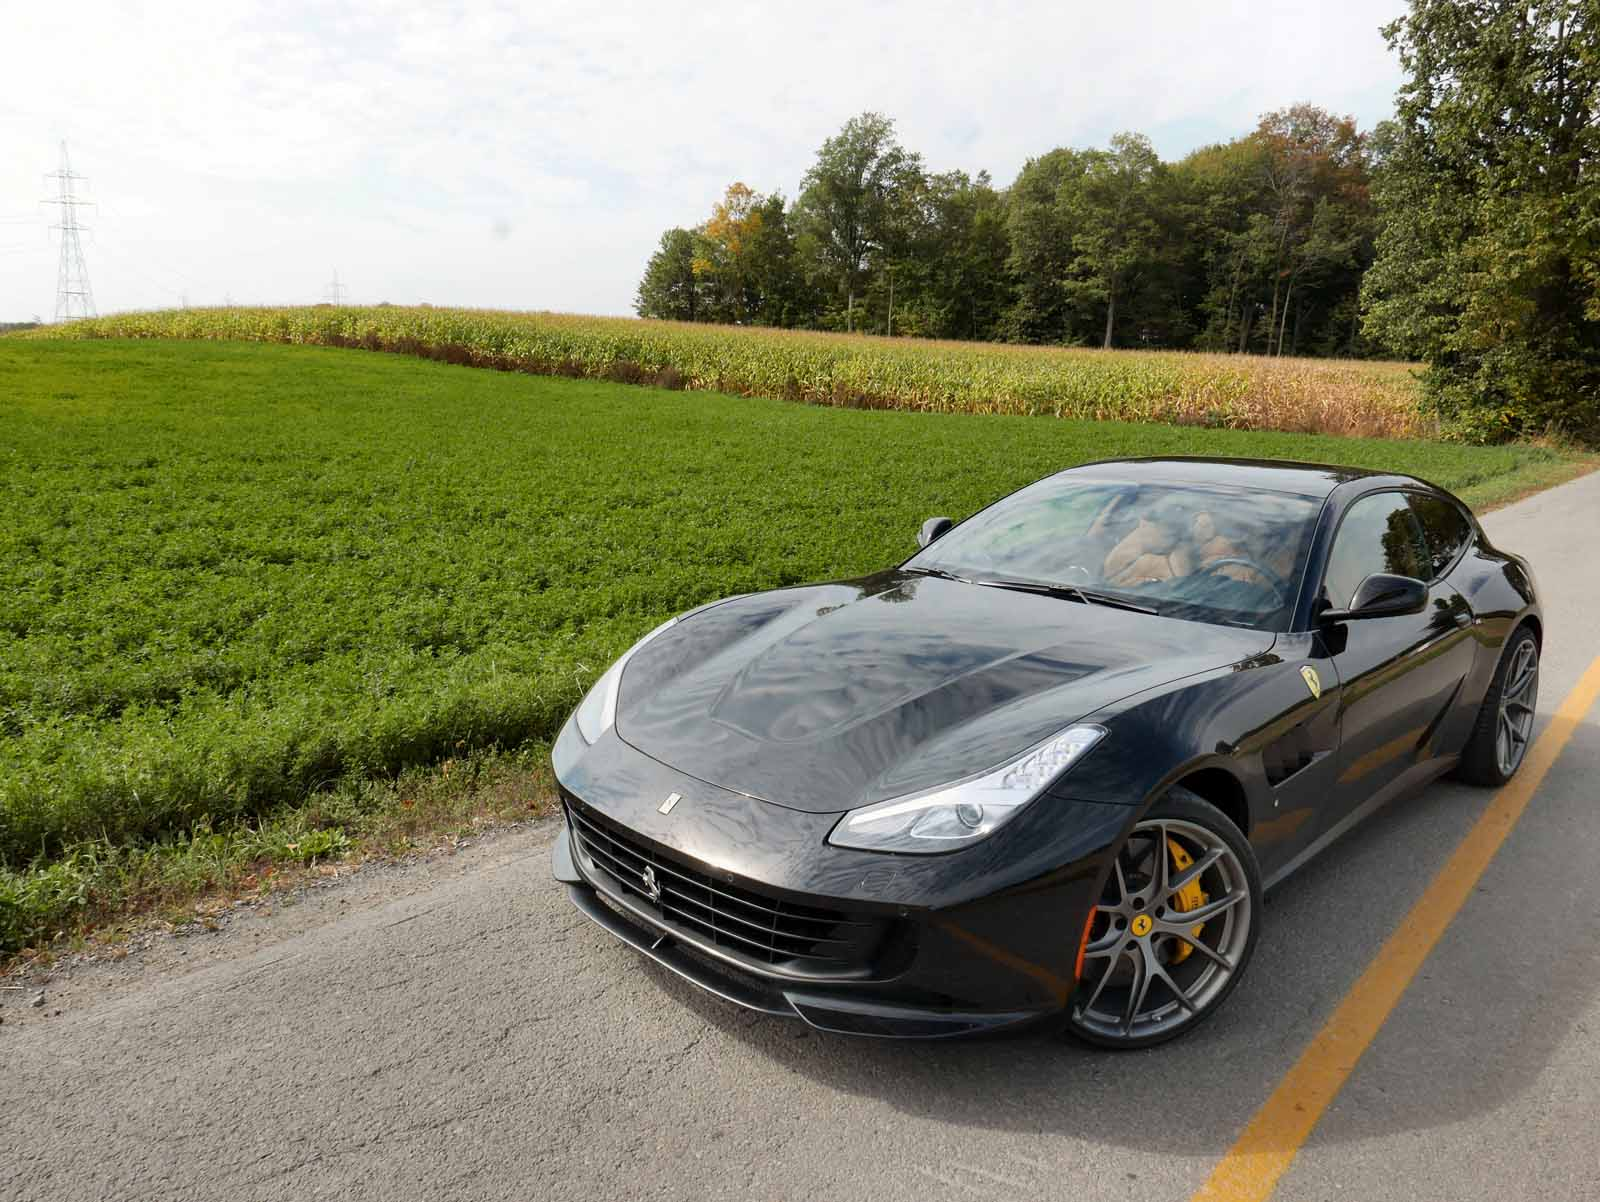 2017 ferrari gtc4lusso review 5 things i learned driving my first ferrari gtc 4lusso ben hunting 9 publicscrutiny Gallery